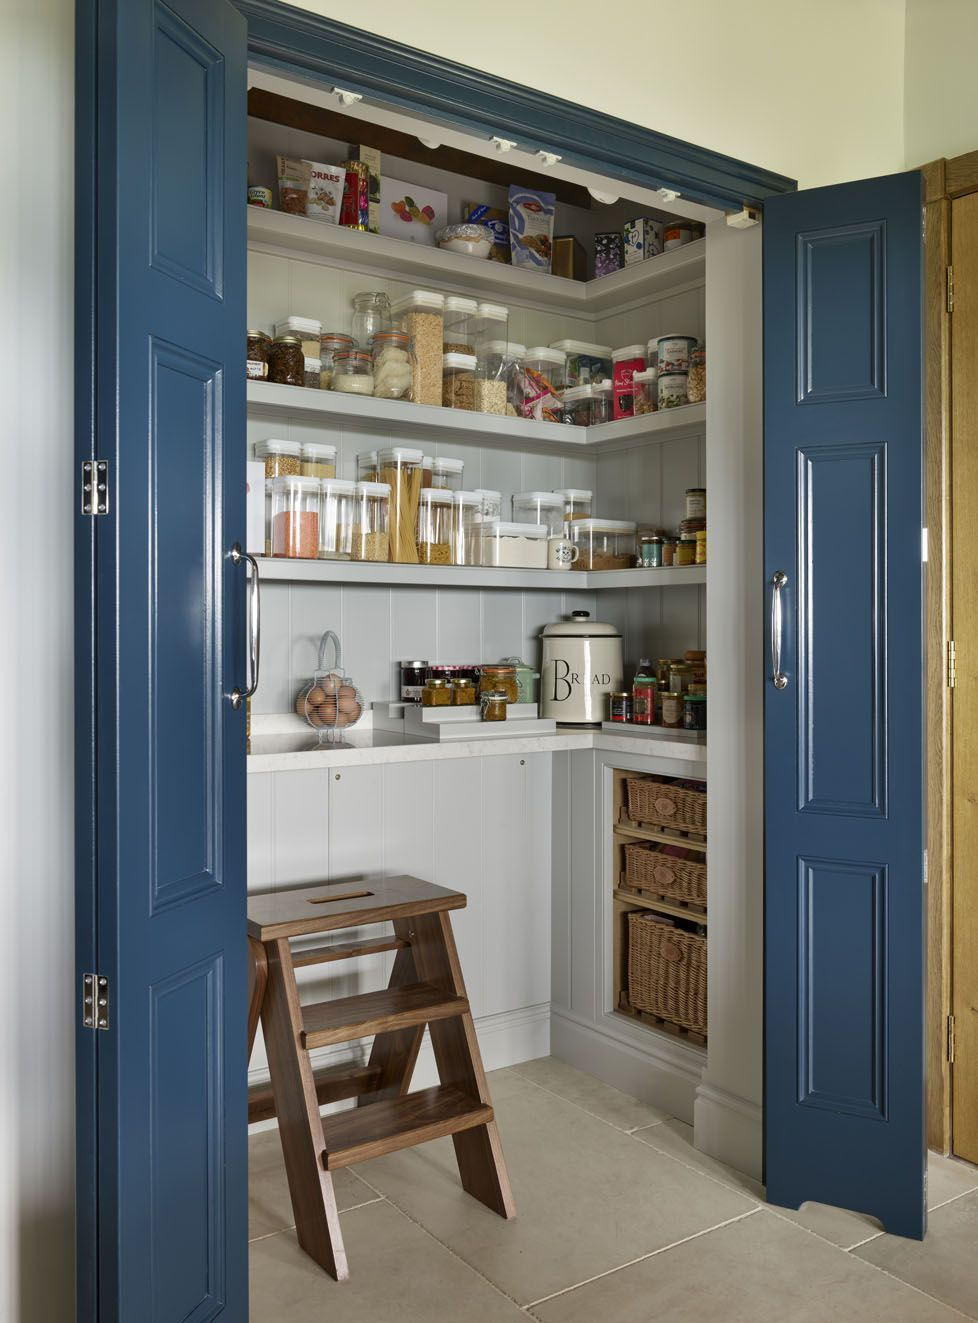 Kitchen storage ideas: 27 space-saving solutions